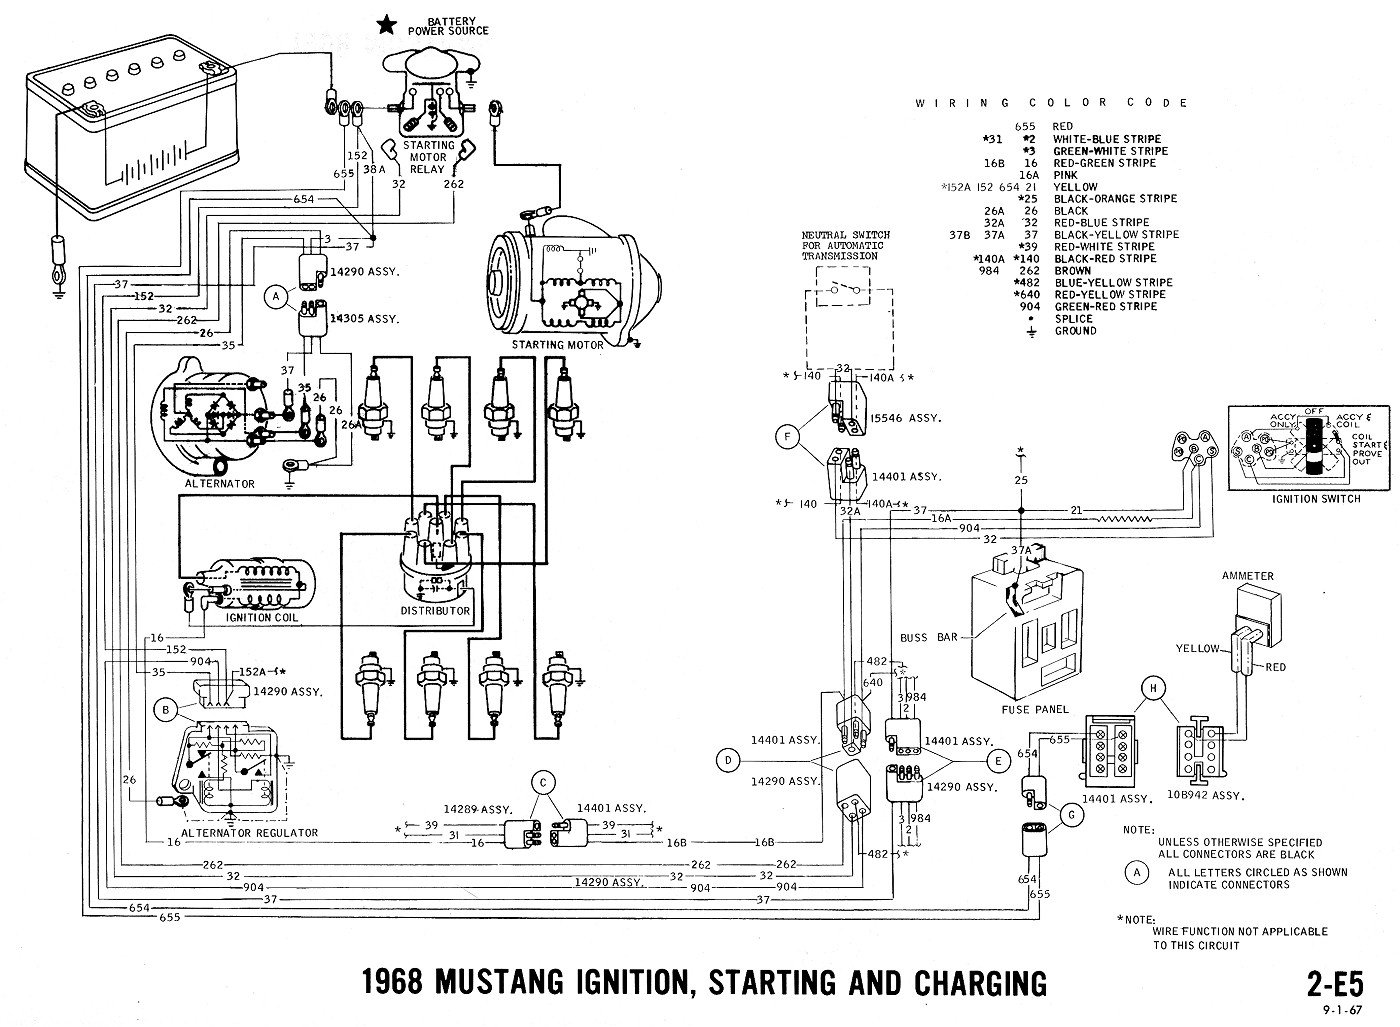 1972 ford f100 ignition switch wiring diagram deep well pump 70 mustang steering column get free image